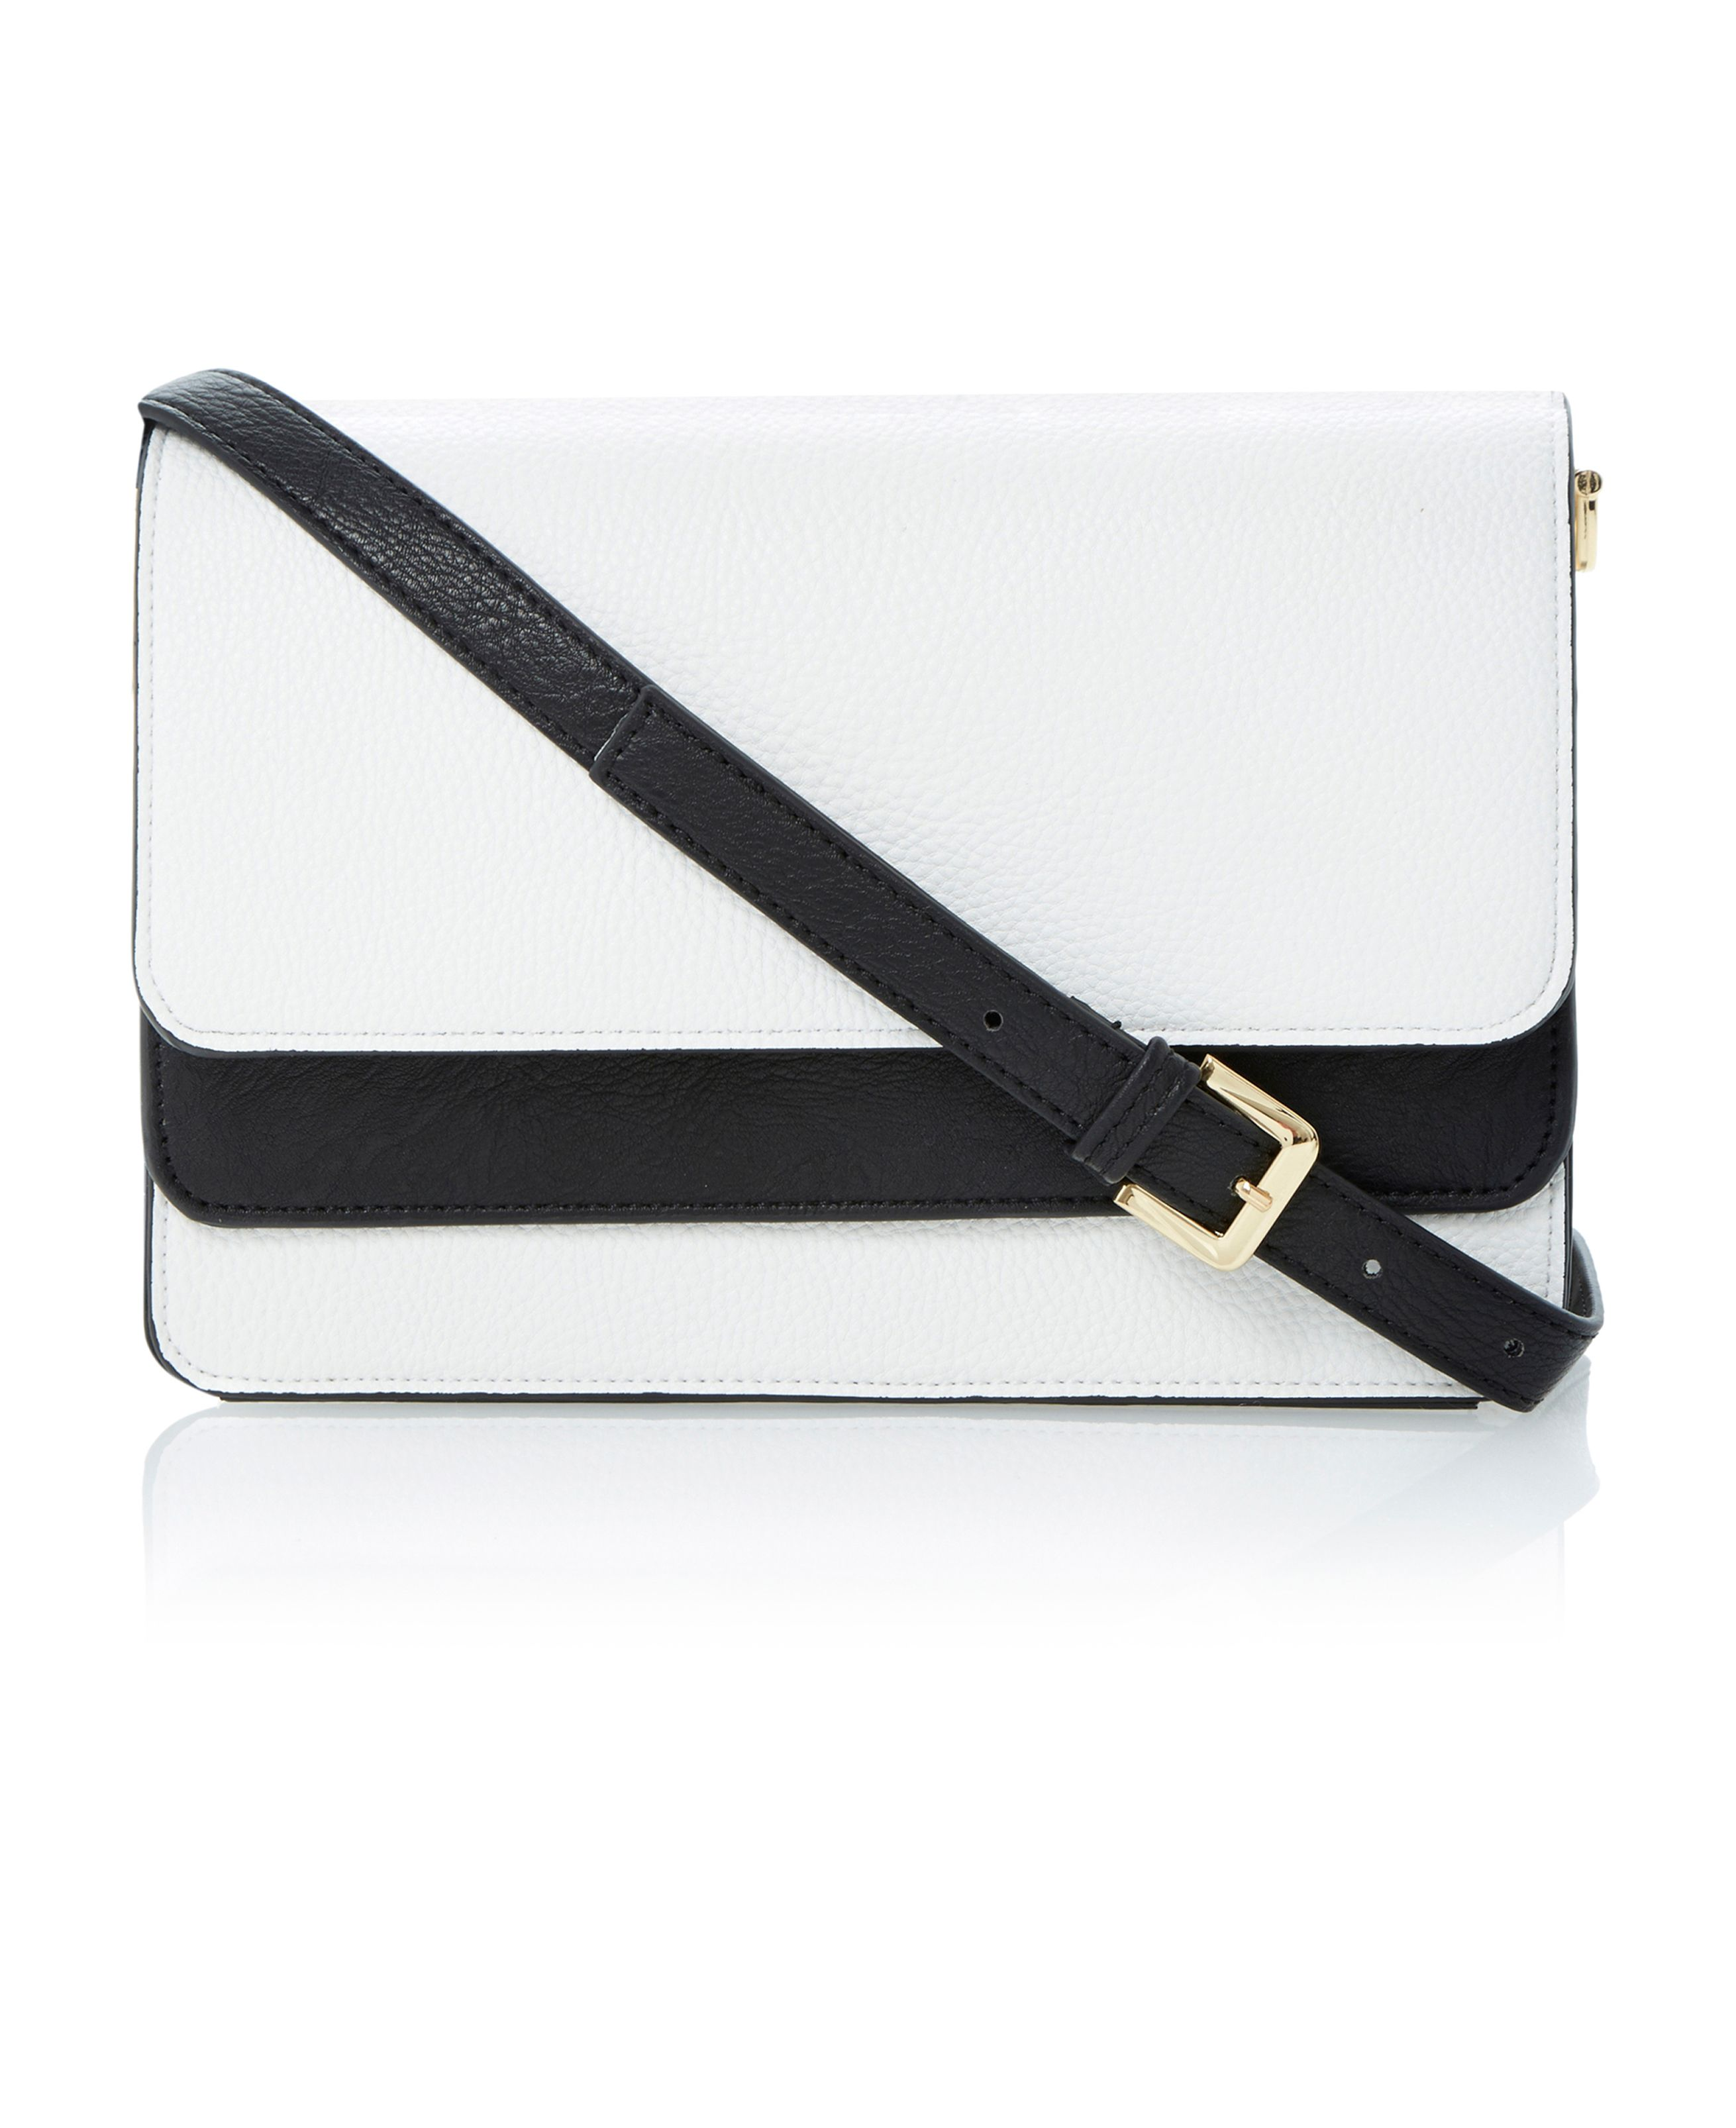 Brimey monochrome double foldover clutch bag